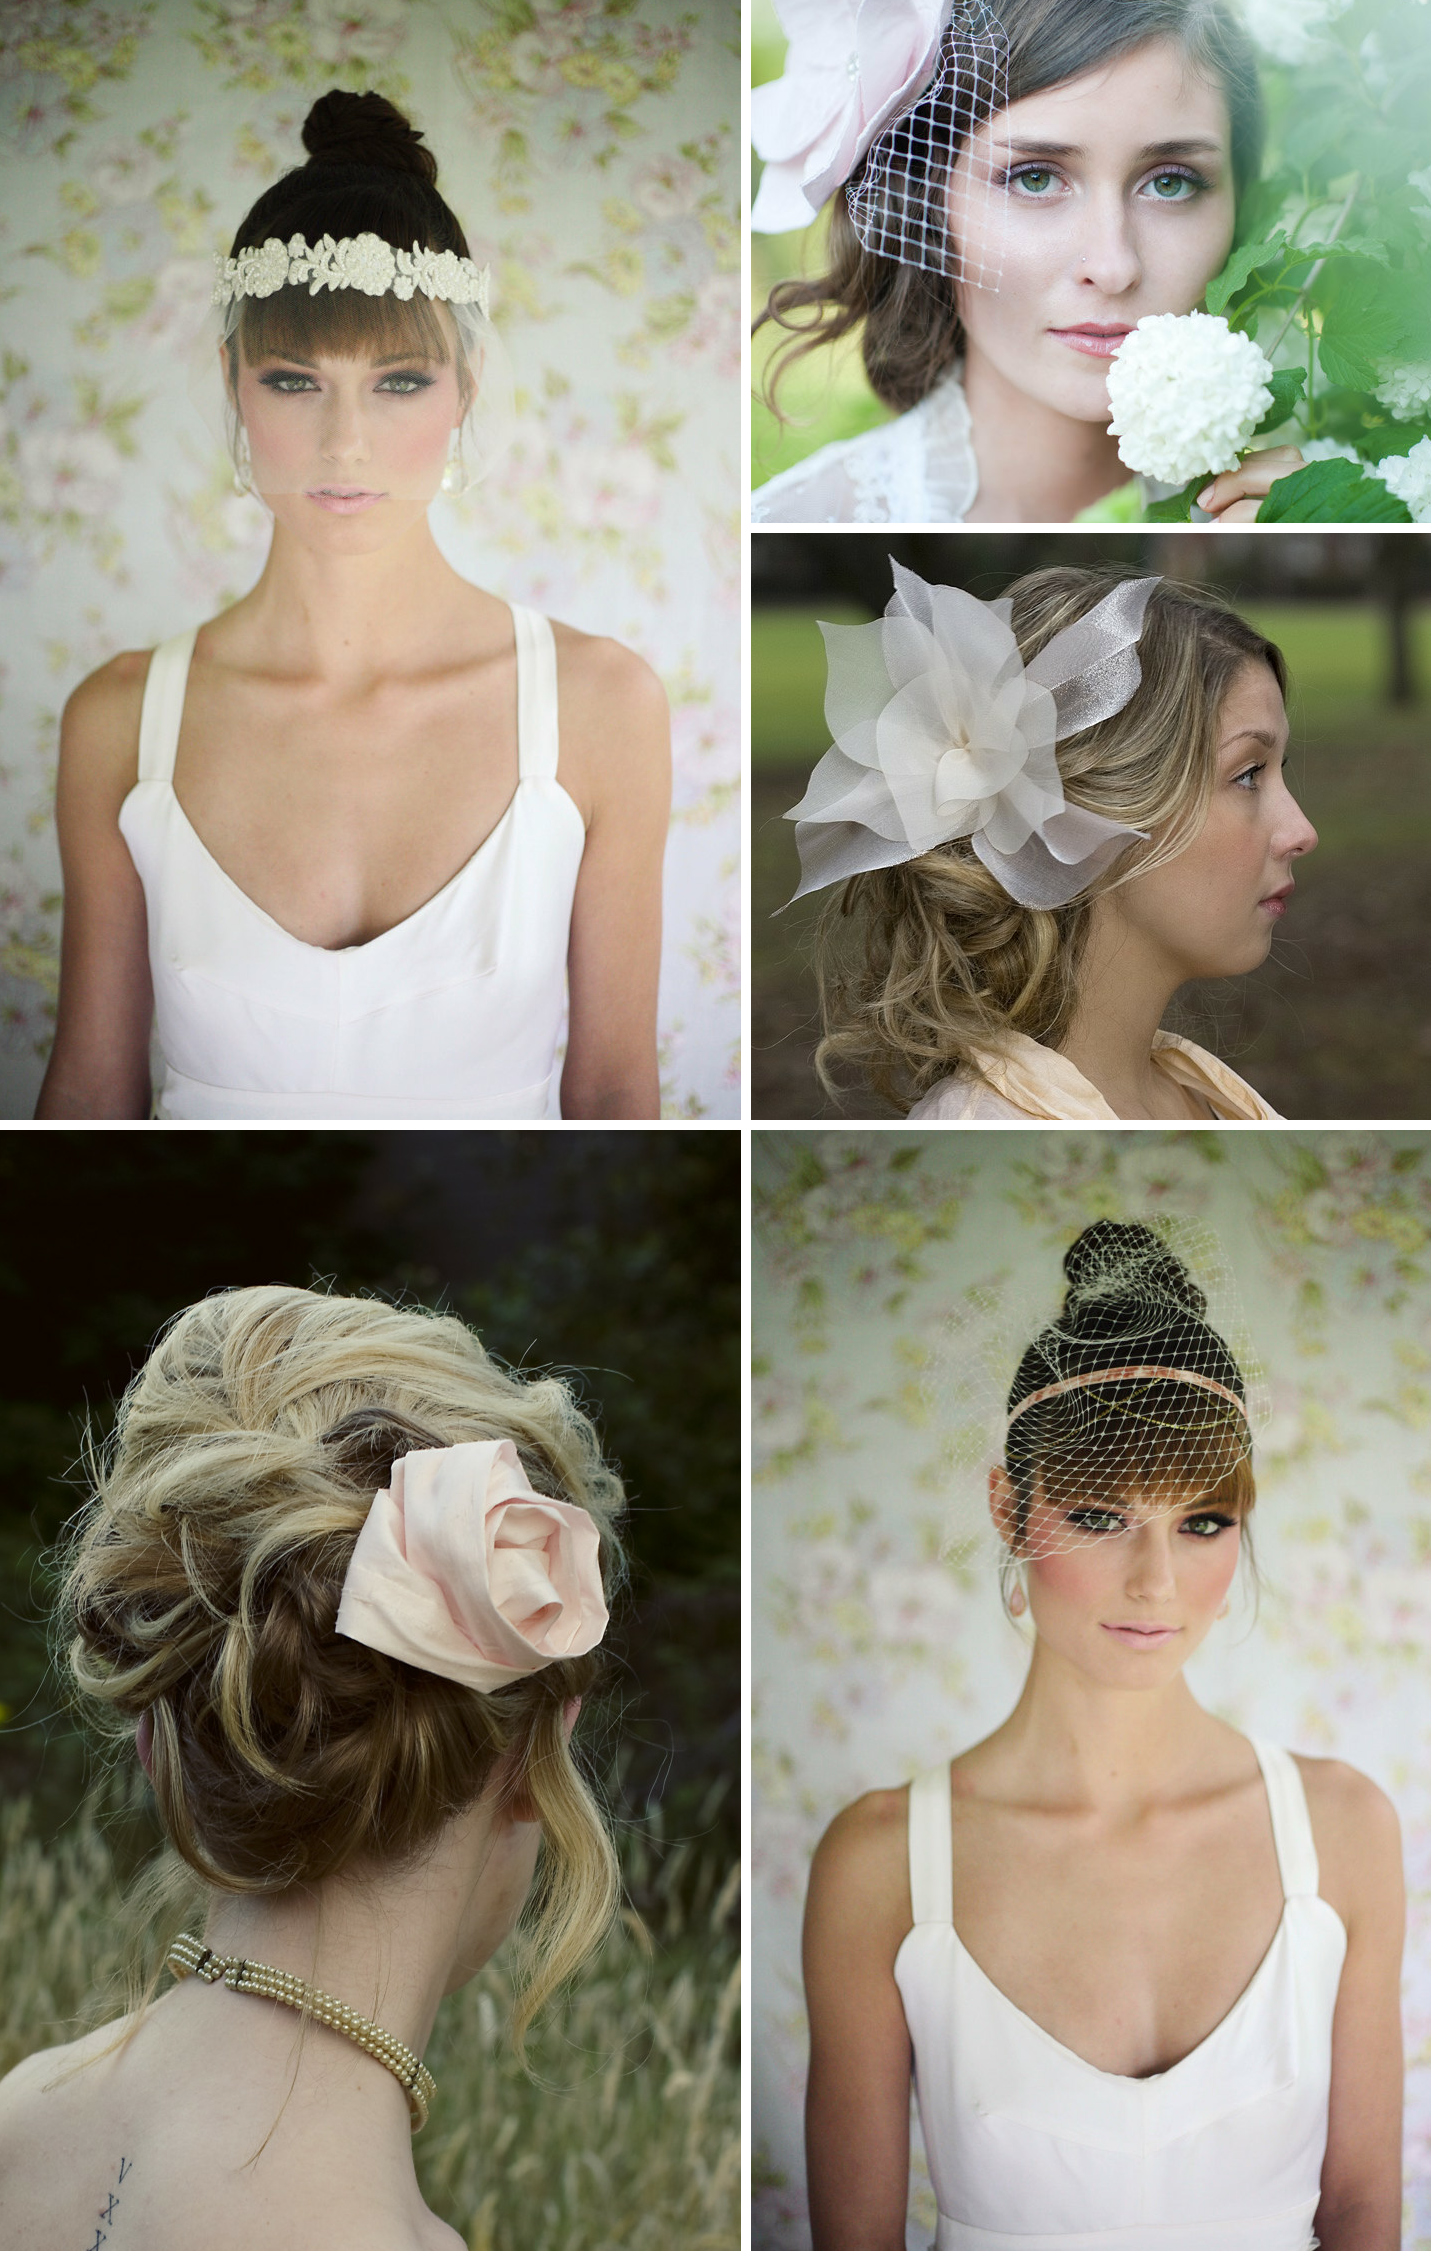 Summer-brides-guide-to-wedding-veils-bridal-hair-accessories-1.original